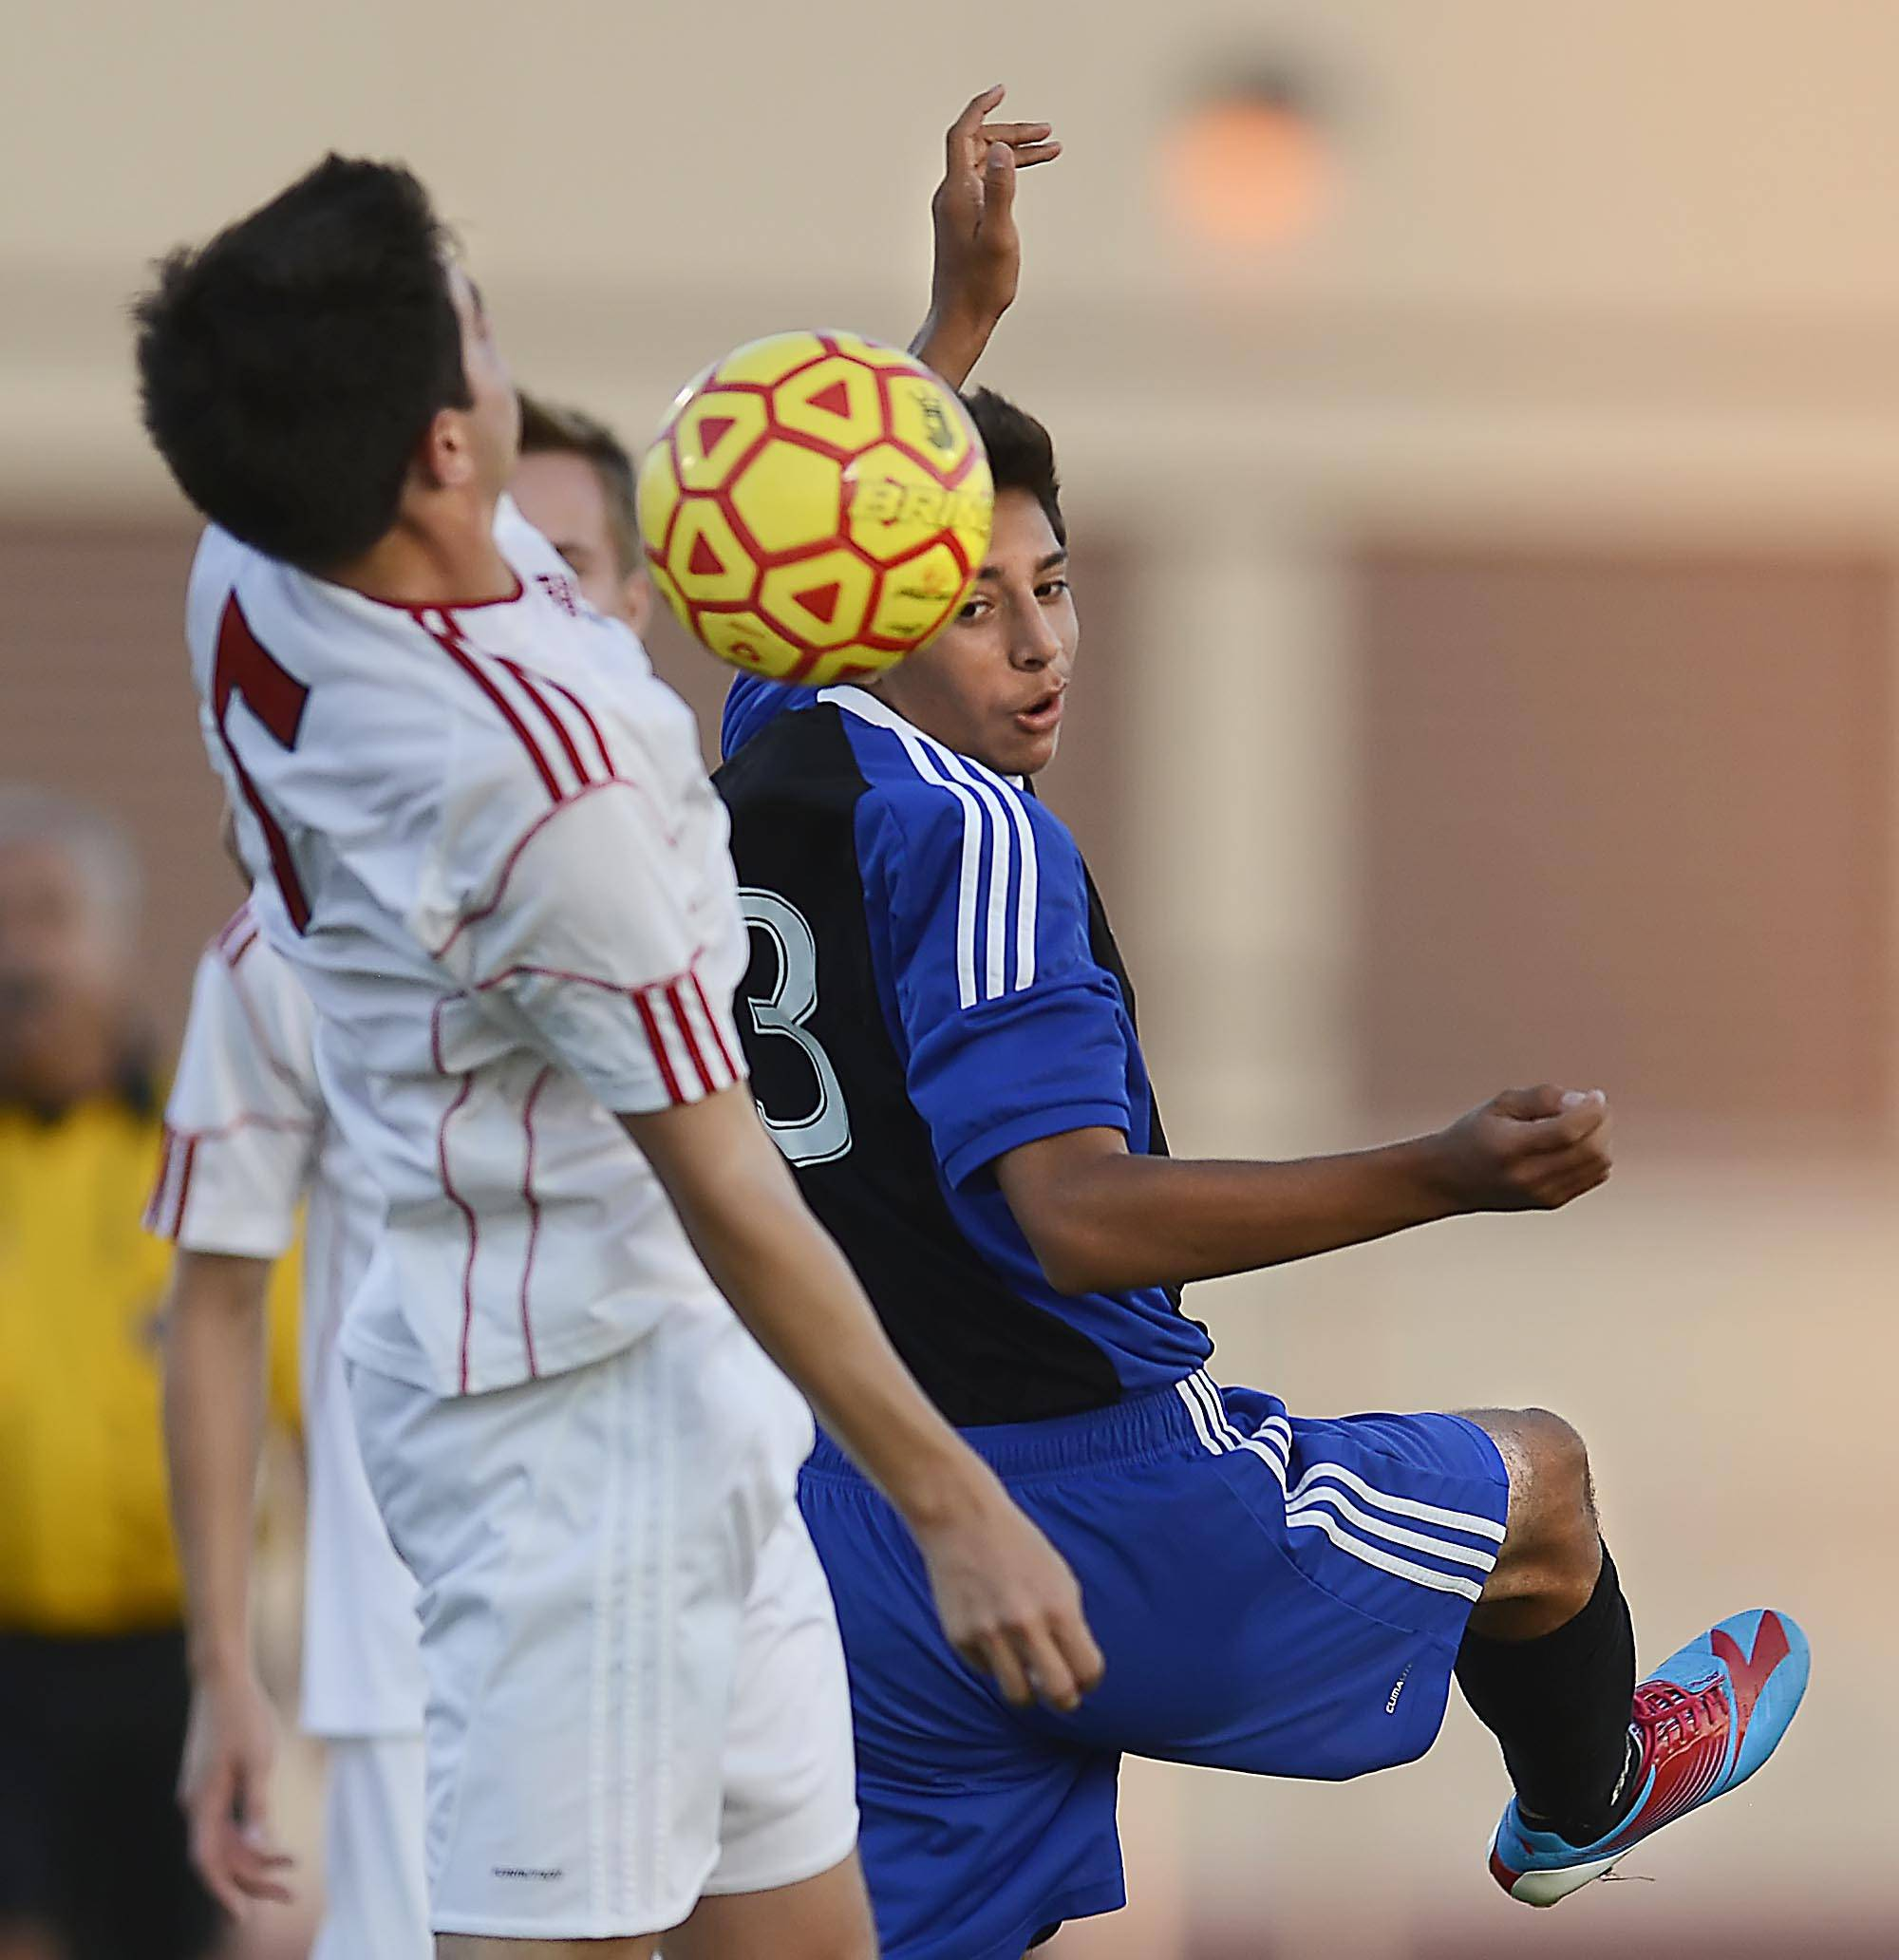 Larkin's Juan Reyes turns as he battles for the ball with Batavia's Daniel Zagoren Thursday in Batavia.